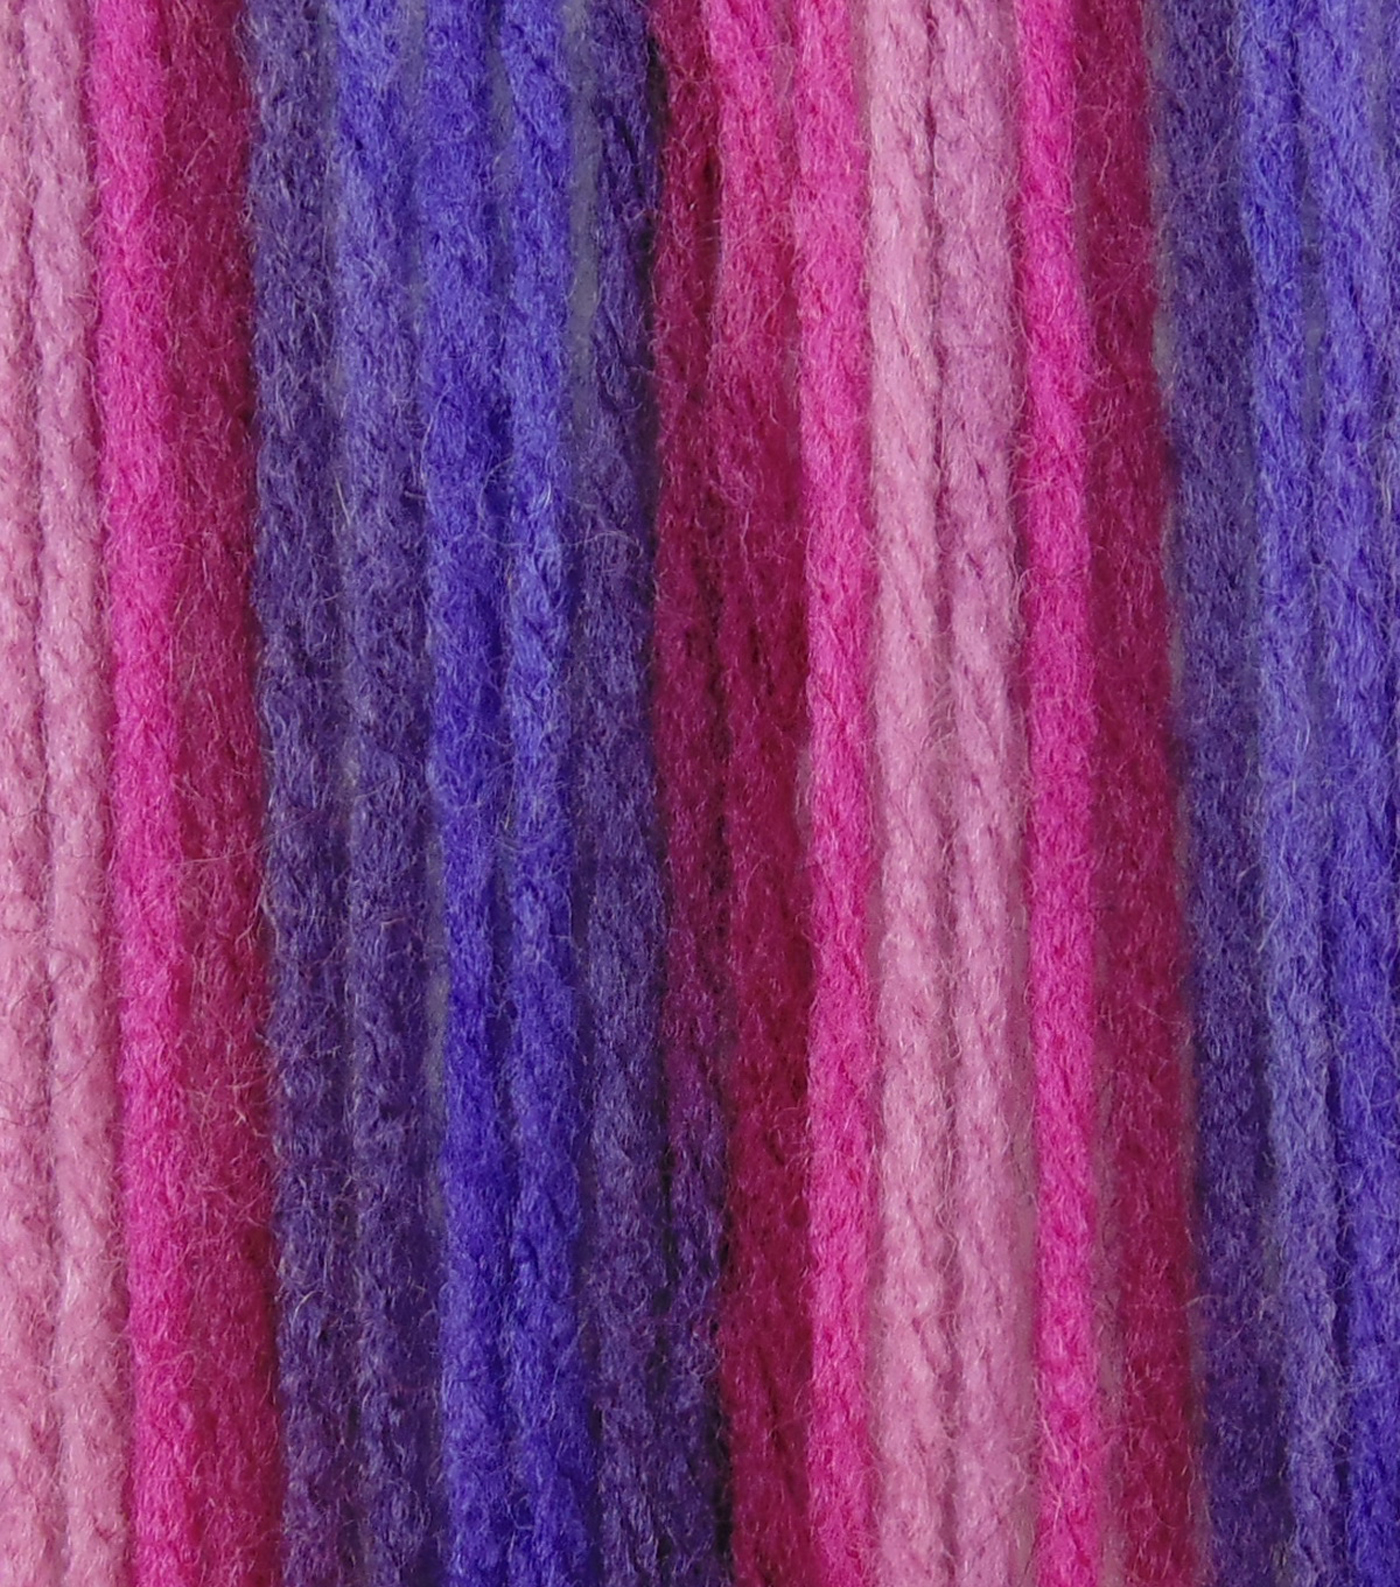 Big Twist Collection Value Worsted Yarn, Bumbleberry Variegated